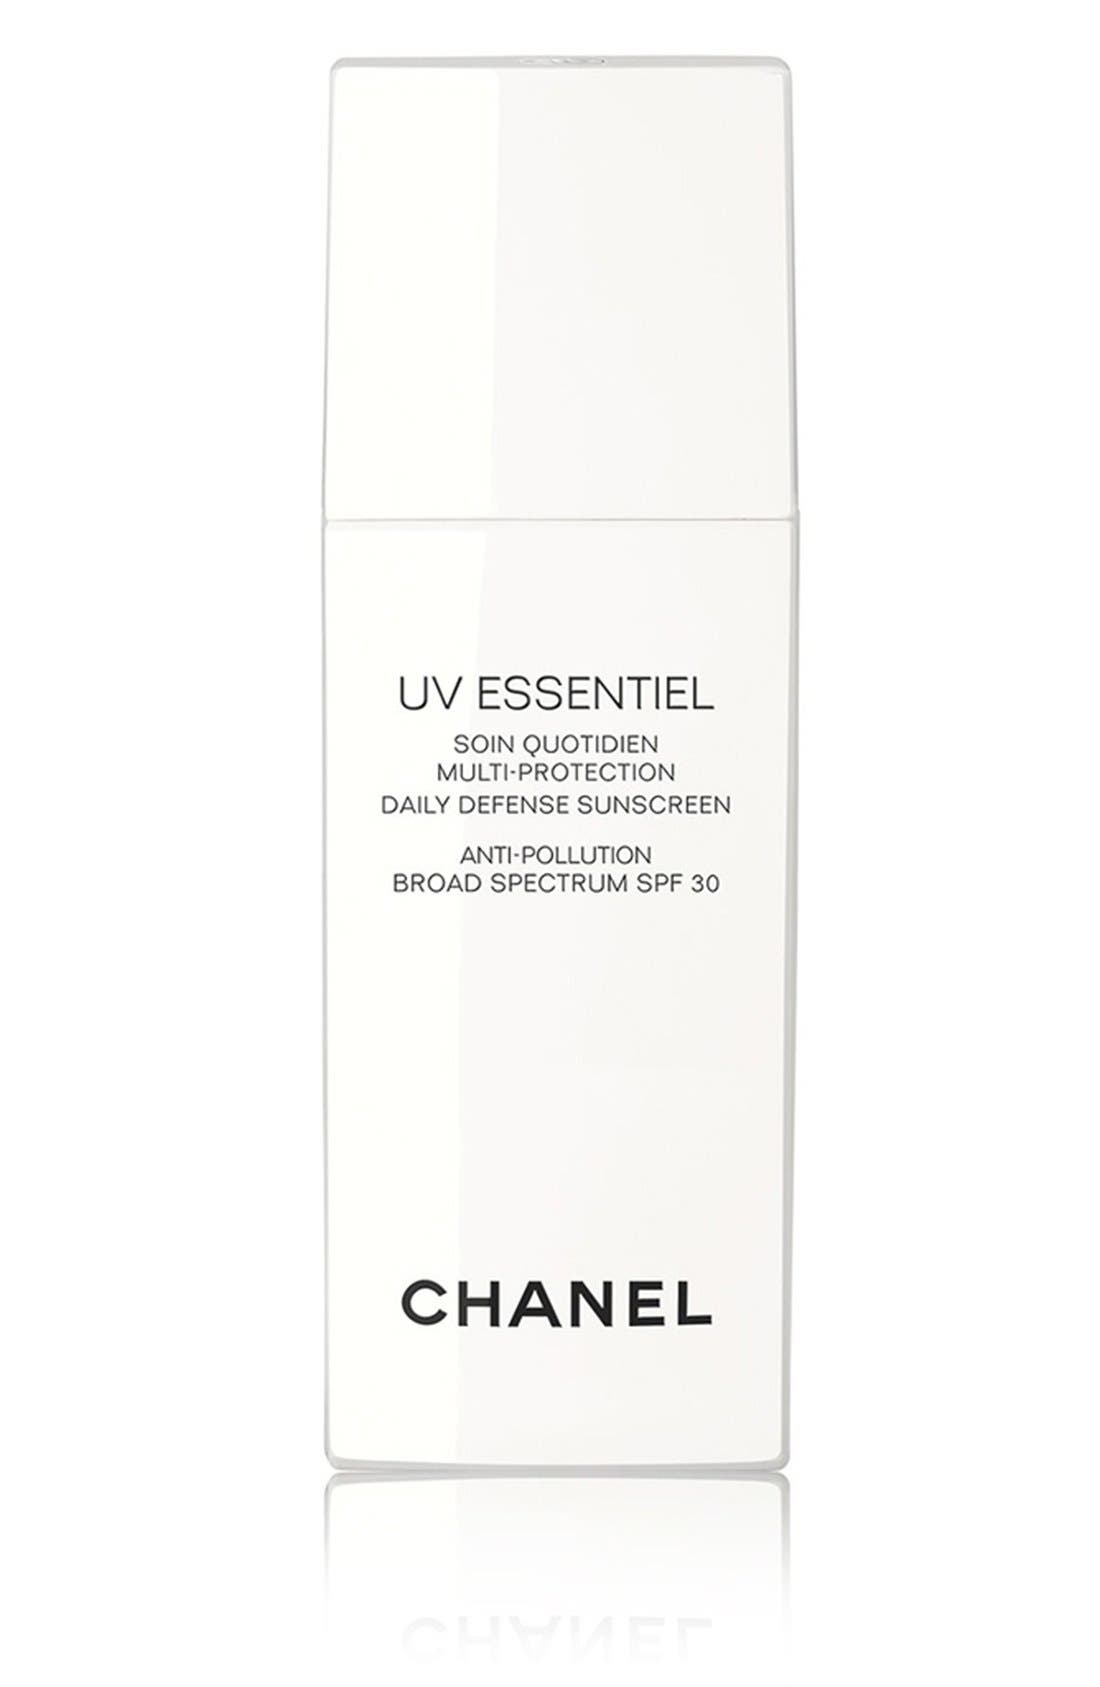 CHANEL UV ESSENTIEL Multi-Protection Daily Defense Sunscreen Anti-Pollution Broad Spectrum SPF 30